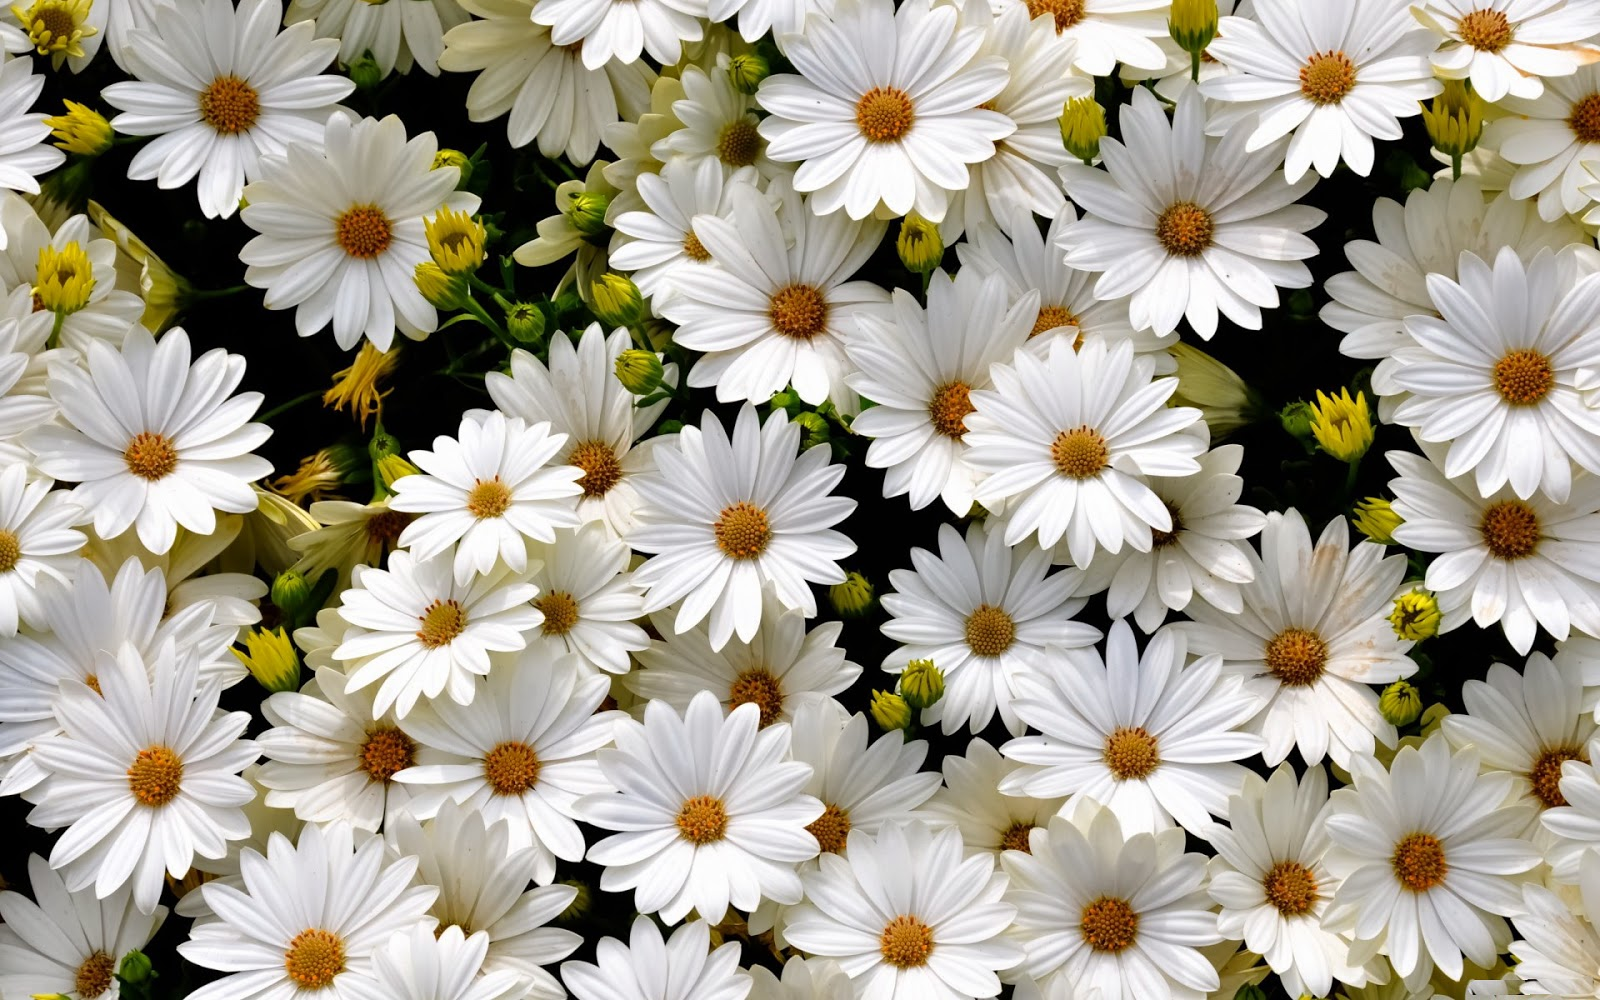 daisies flowers  flower, Beautiful flower